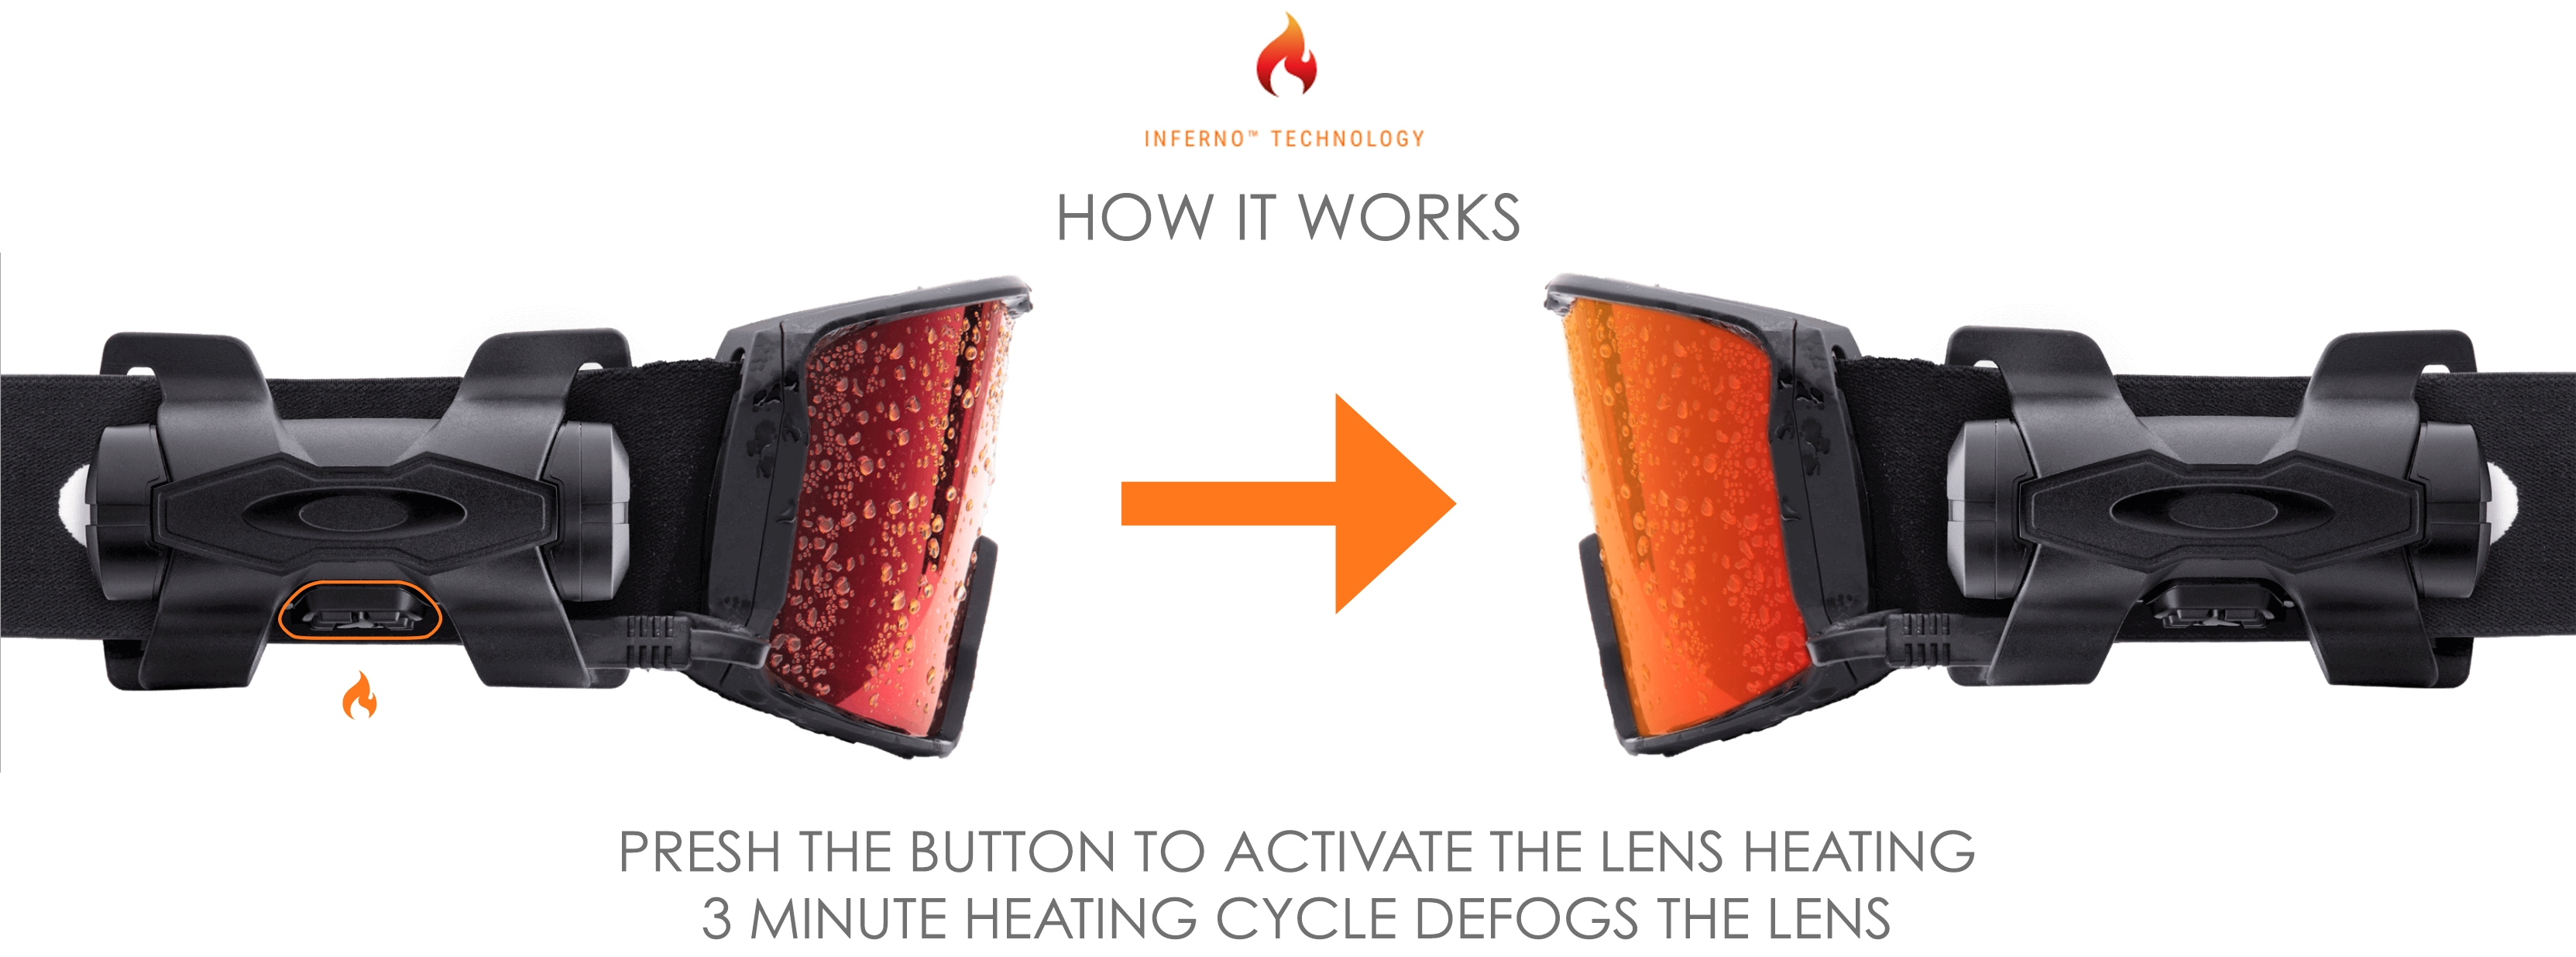 Oakley Inferno Technology, defogs the lens of your goggle